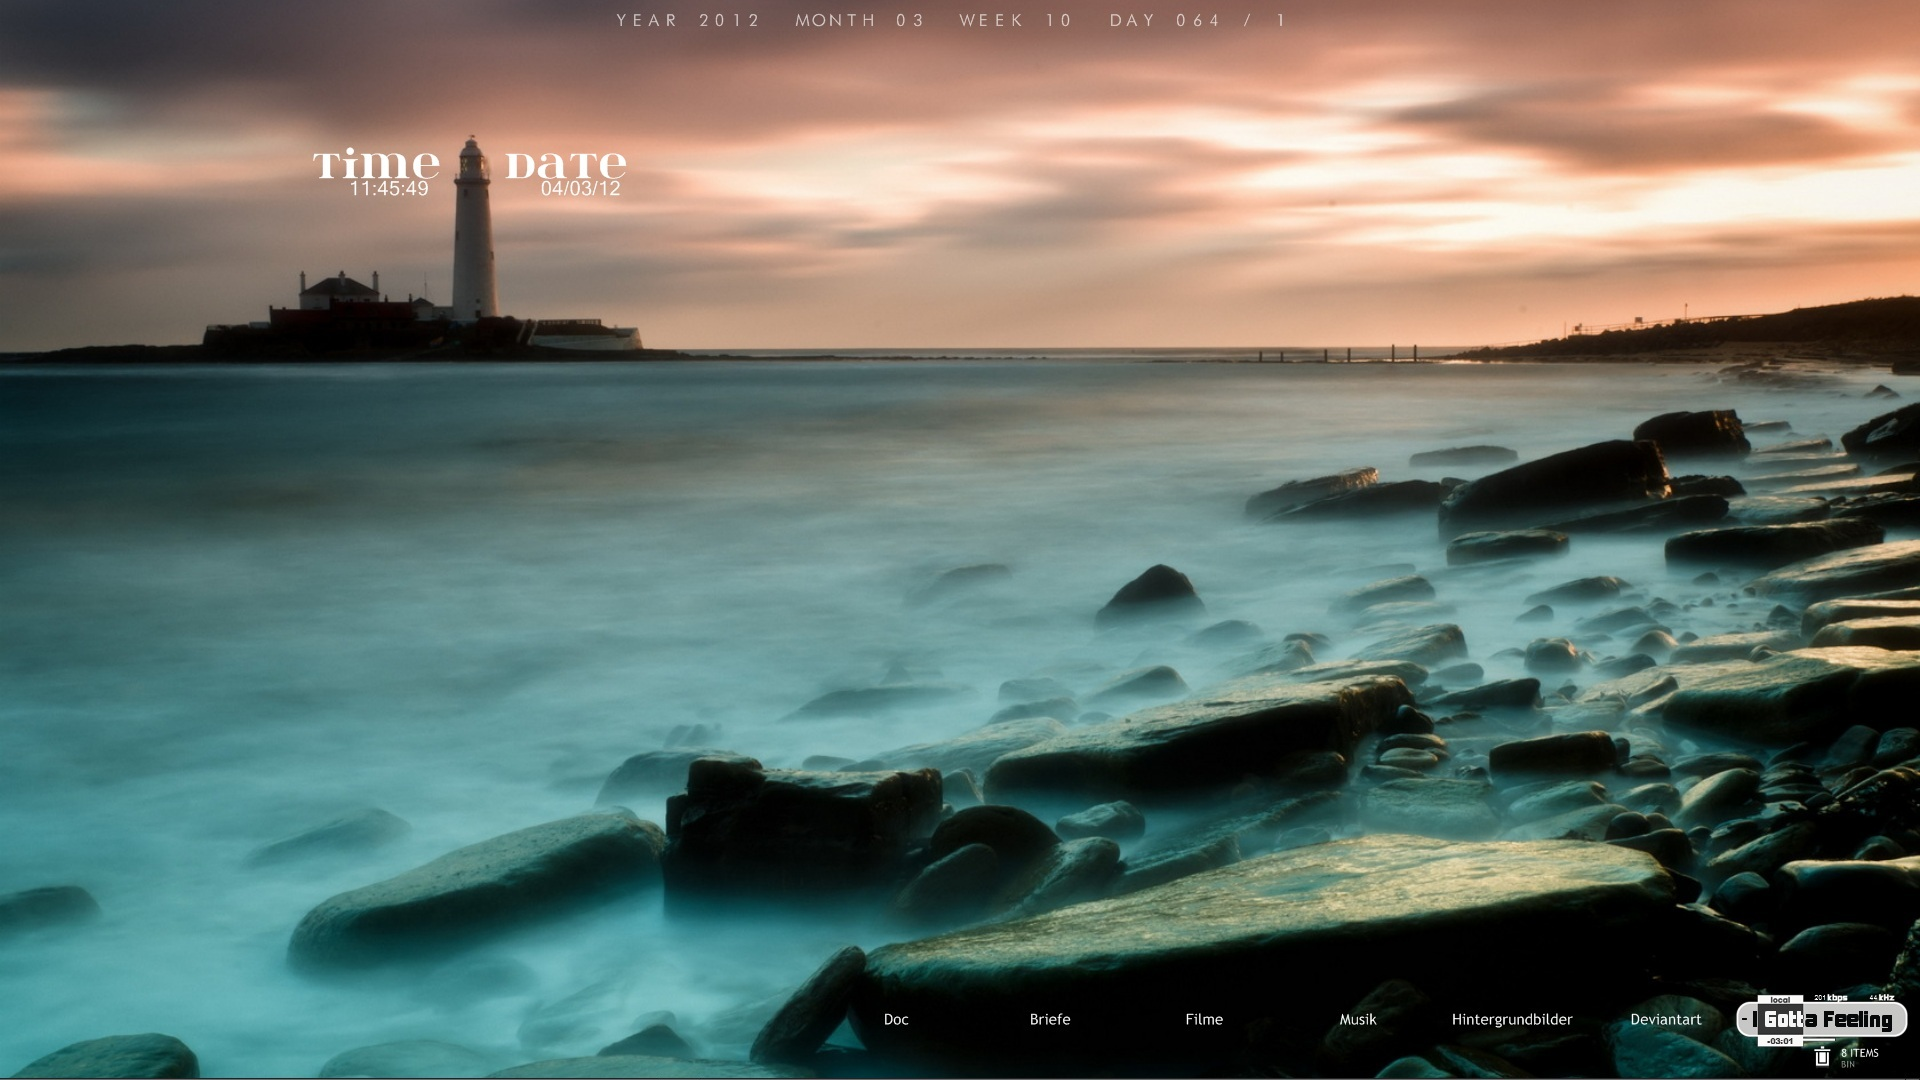 the coast  03.03.2012 by DocBerlin77